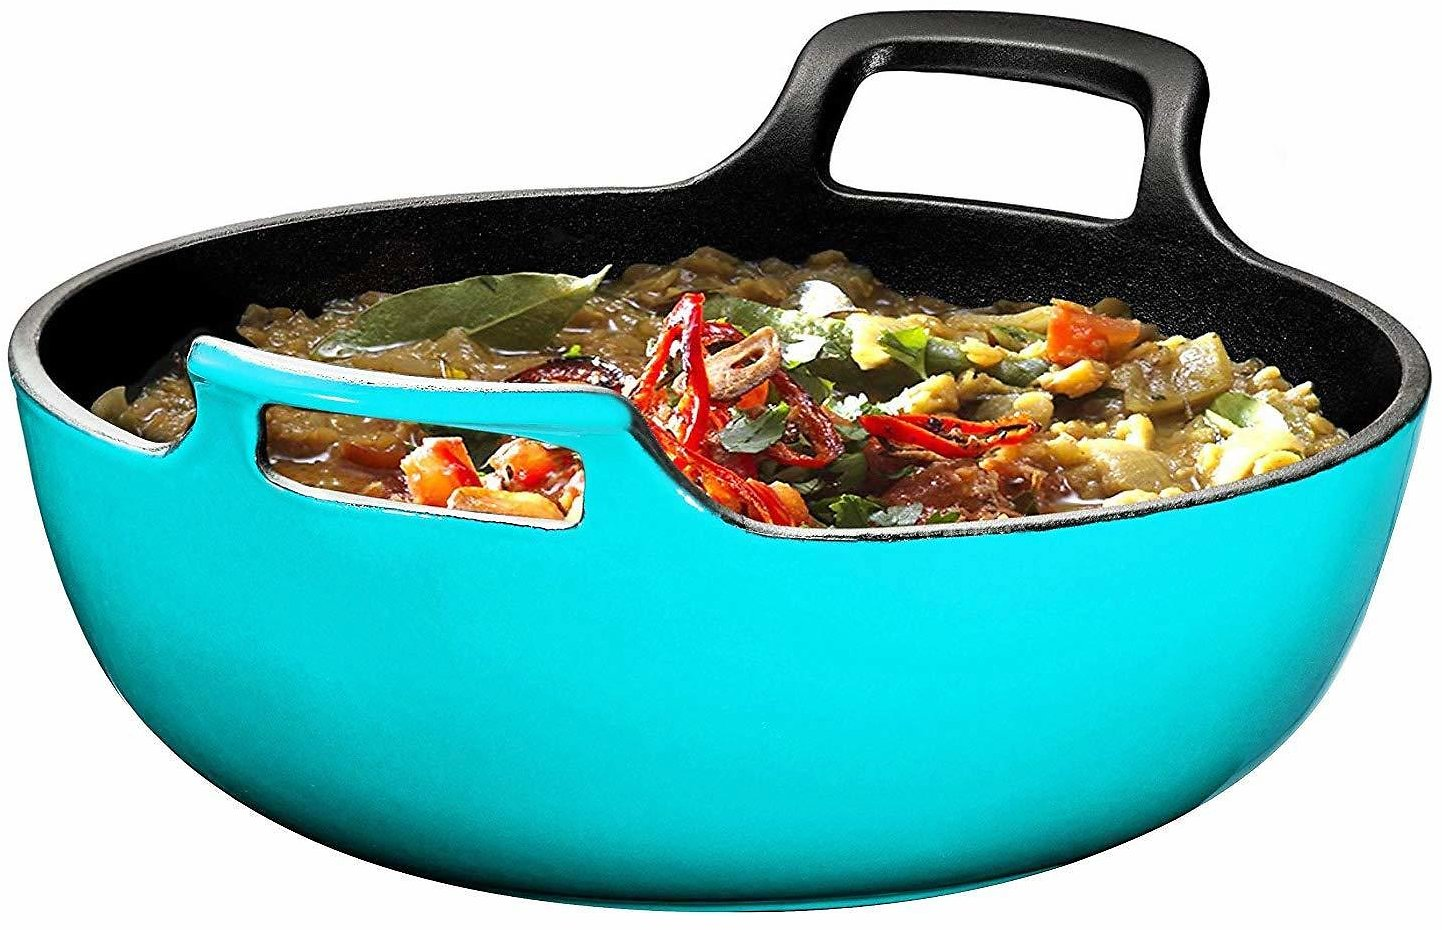 Enameled Cast Iron Balti Dish With Wide Loop Handles, 3 Quart, Turquoise